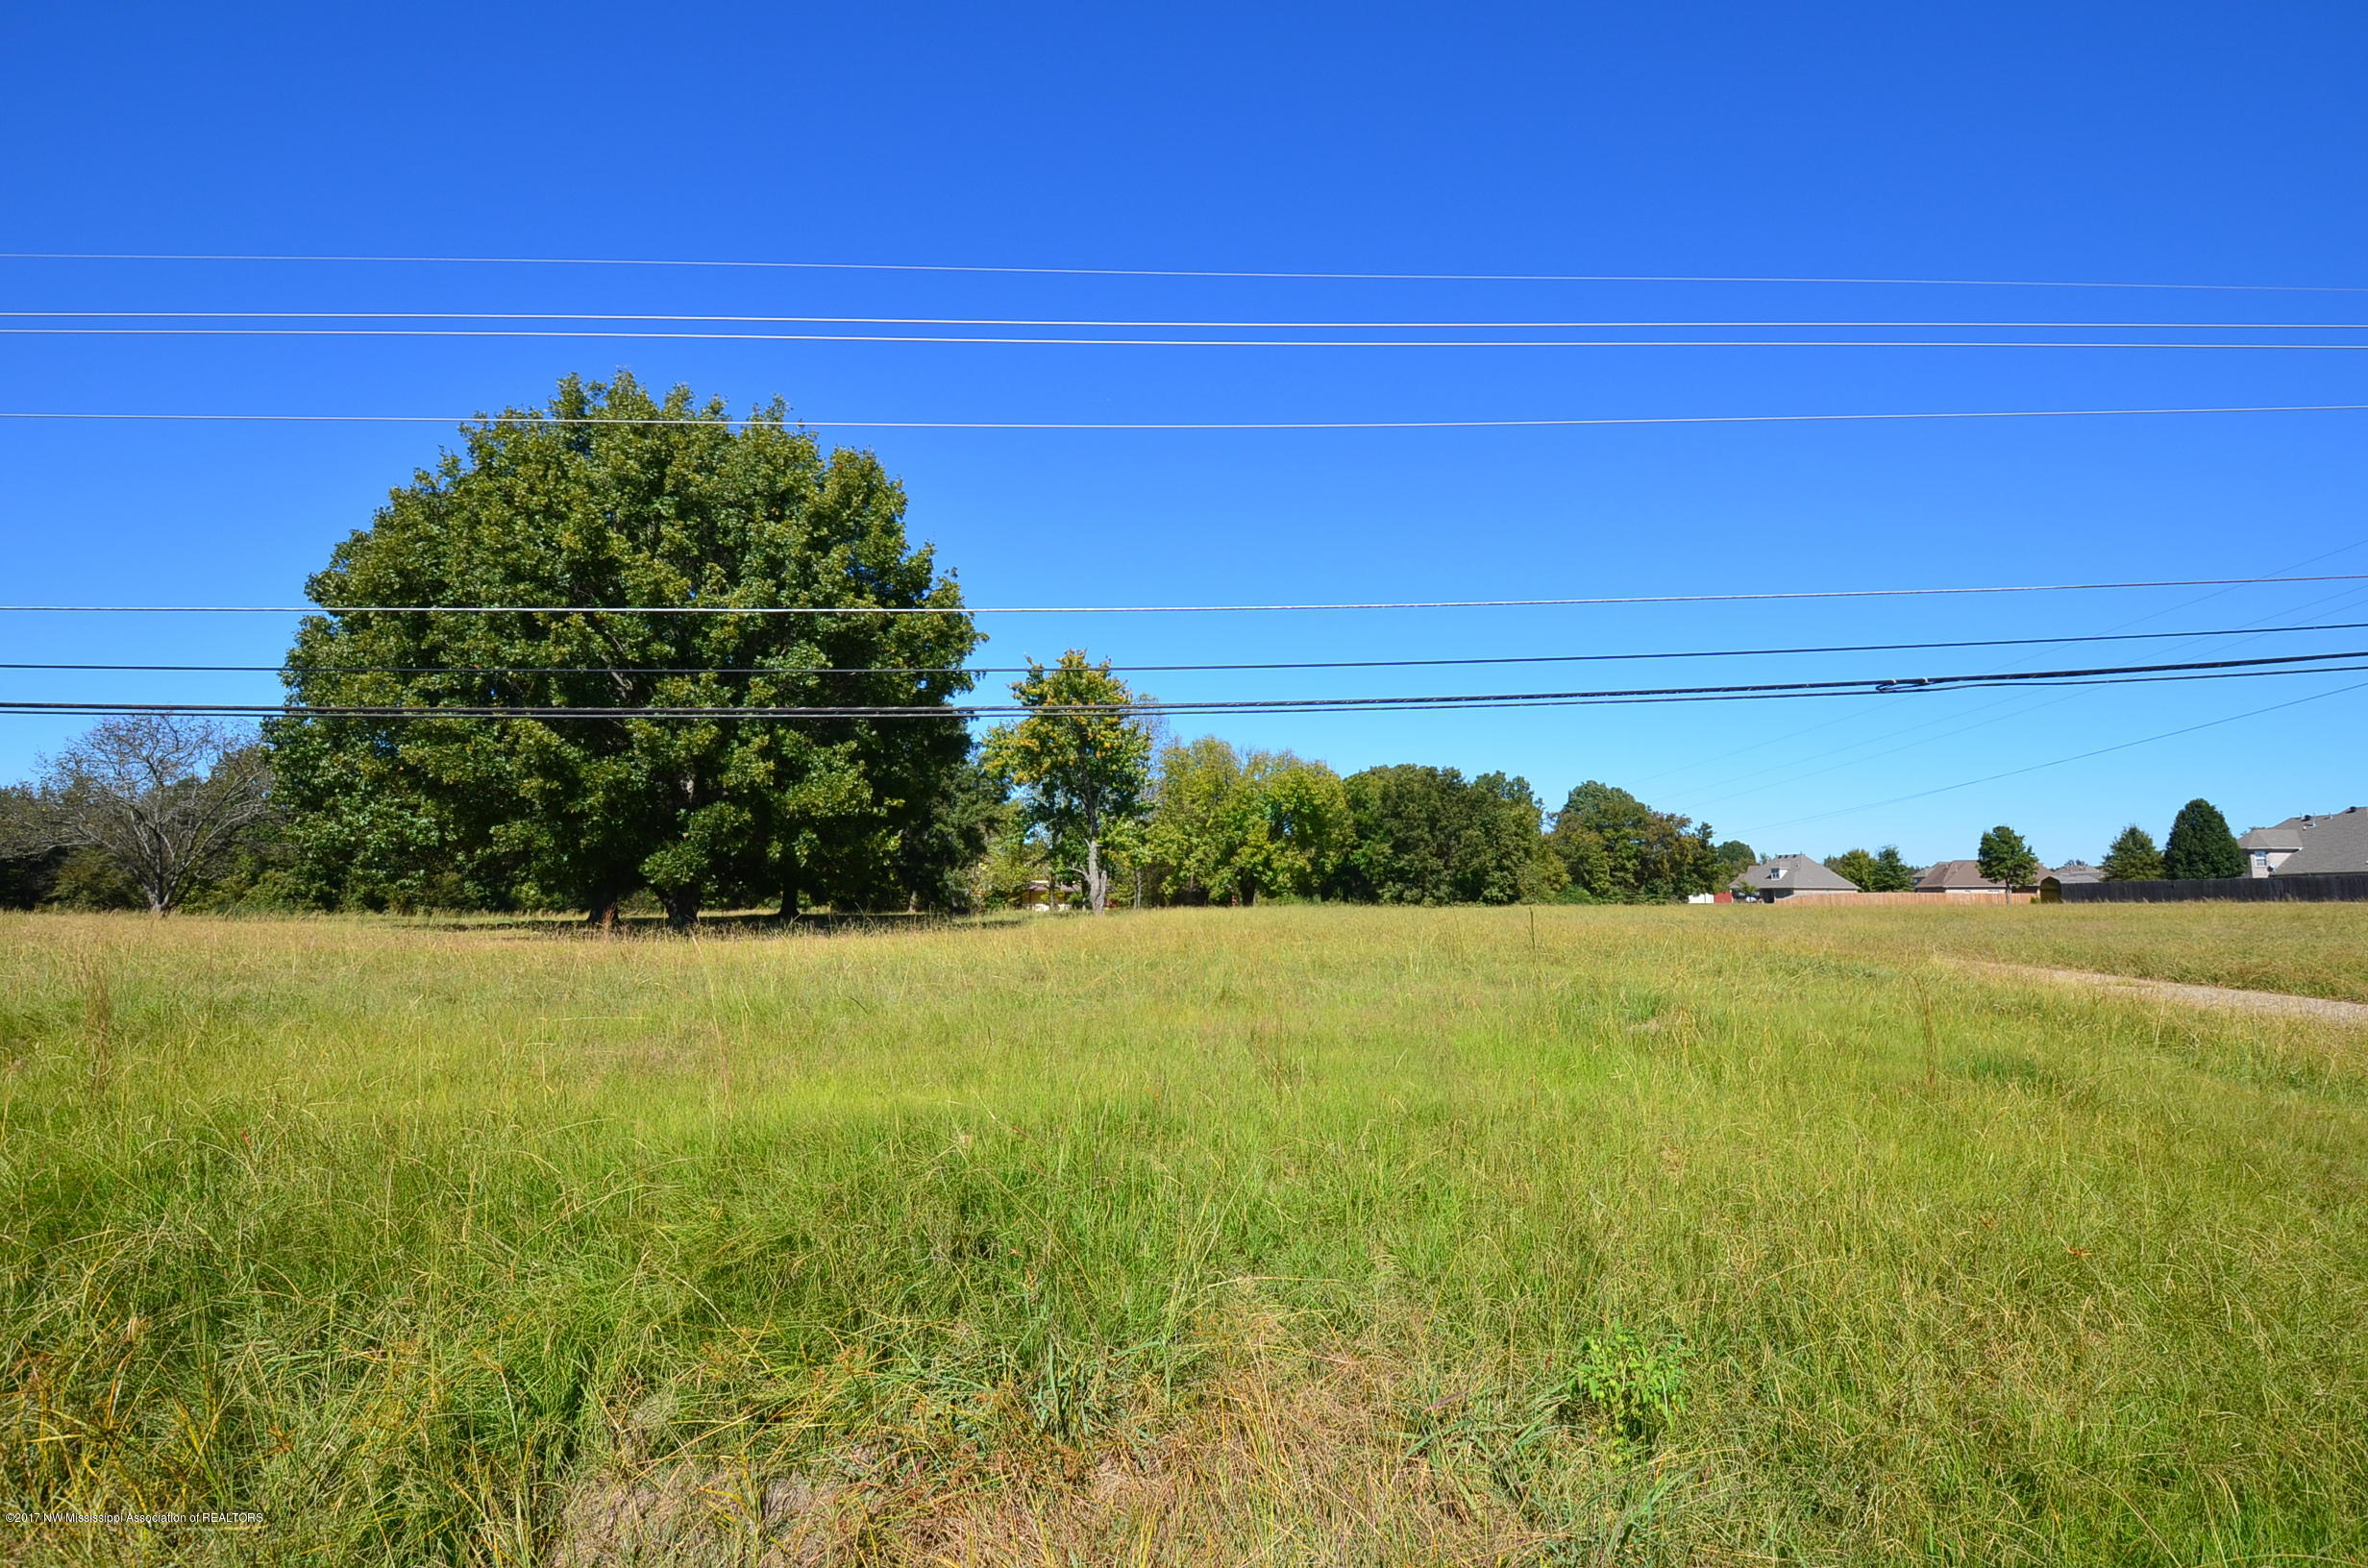 1260 HOLLY SPRINGS ROAD, DeSoto, Mississippi 38632, ,Land,For Sale,HOLLY SPRINGS ROAD,312969